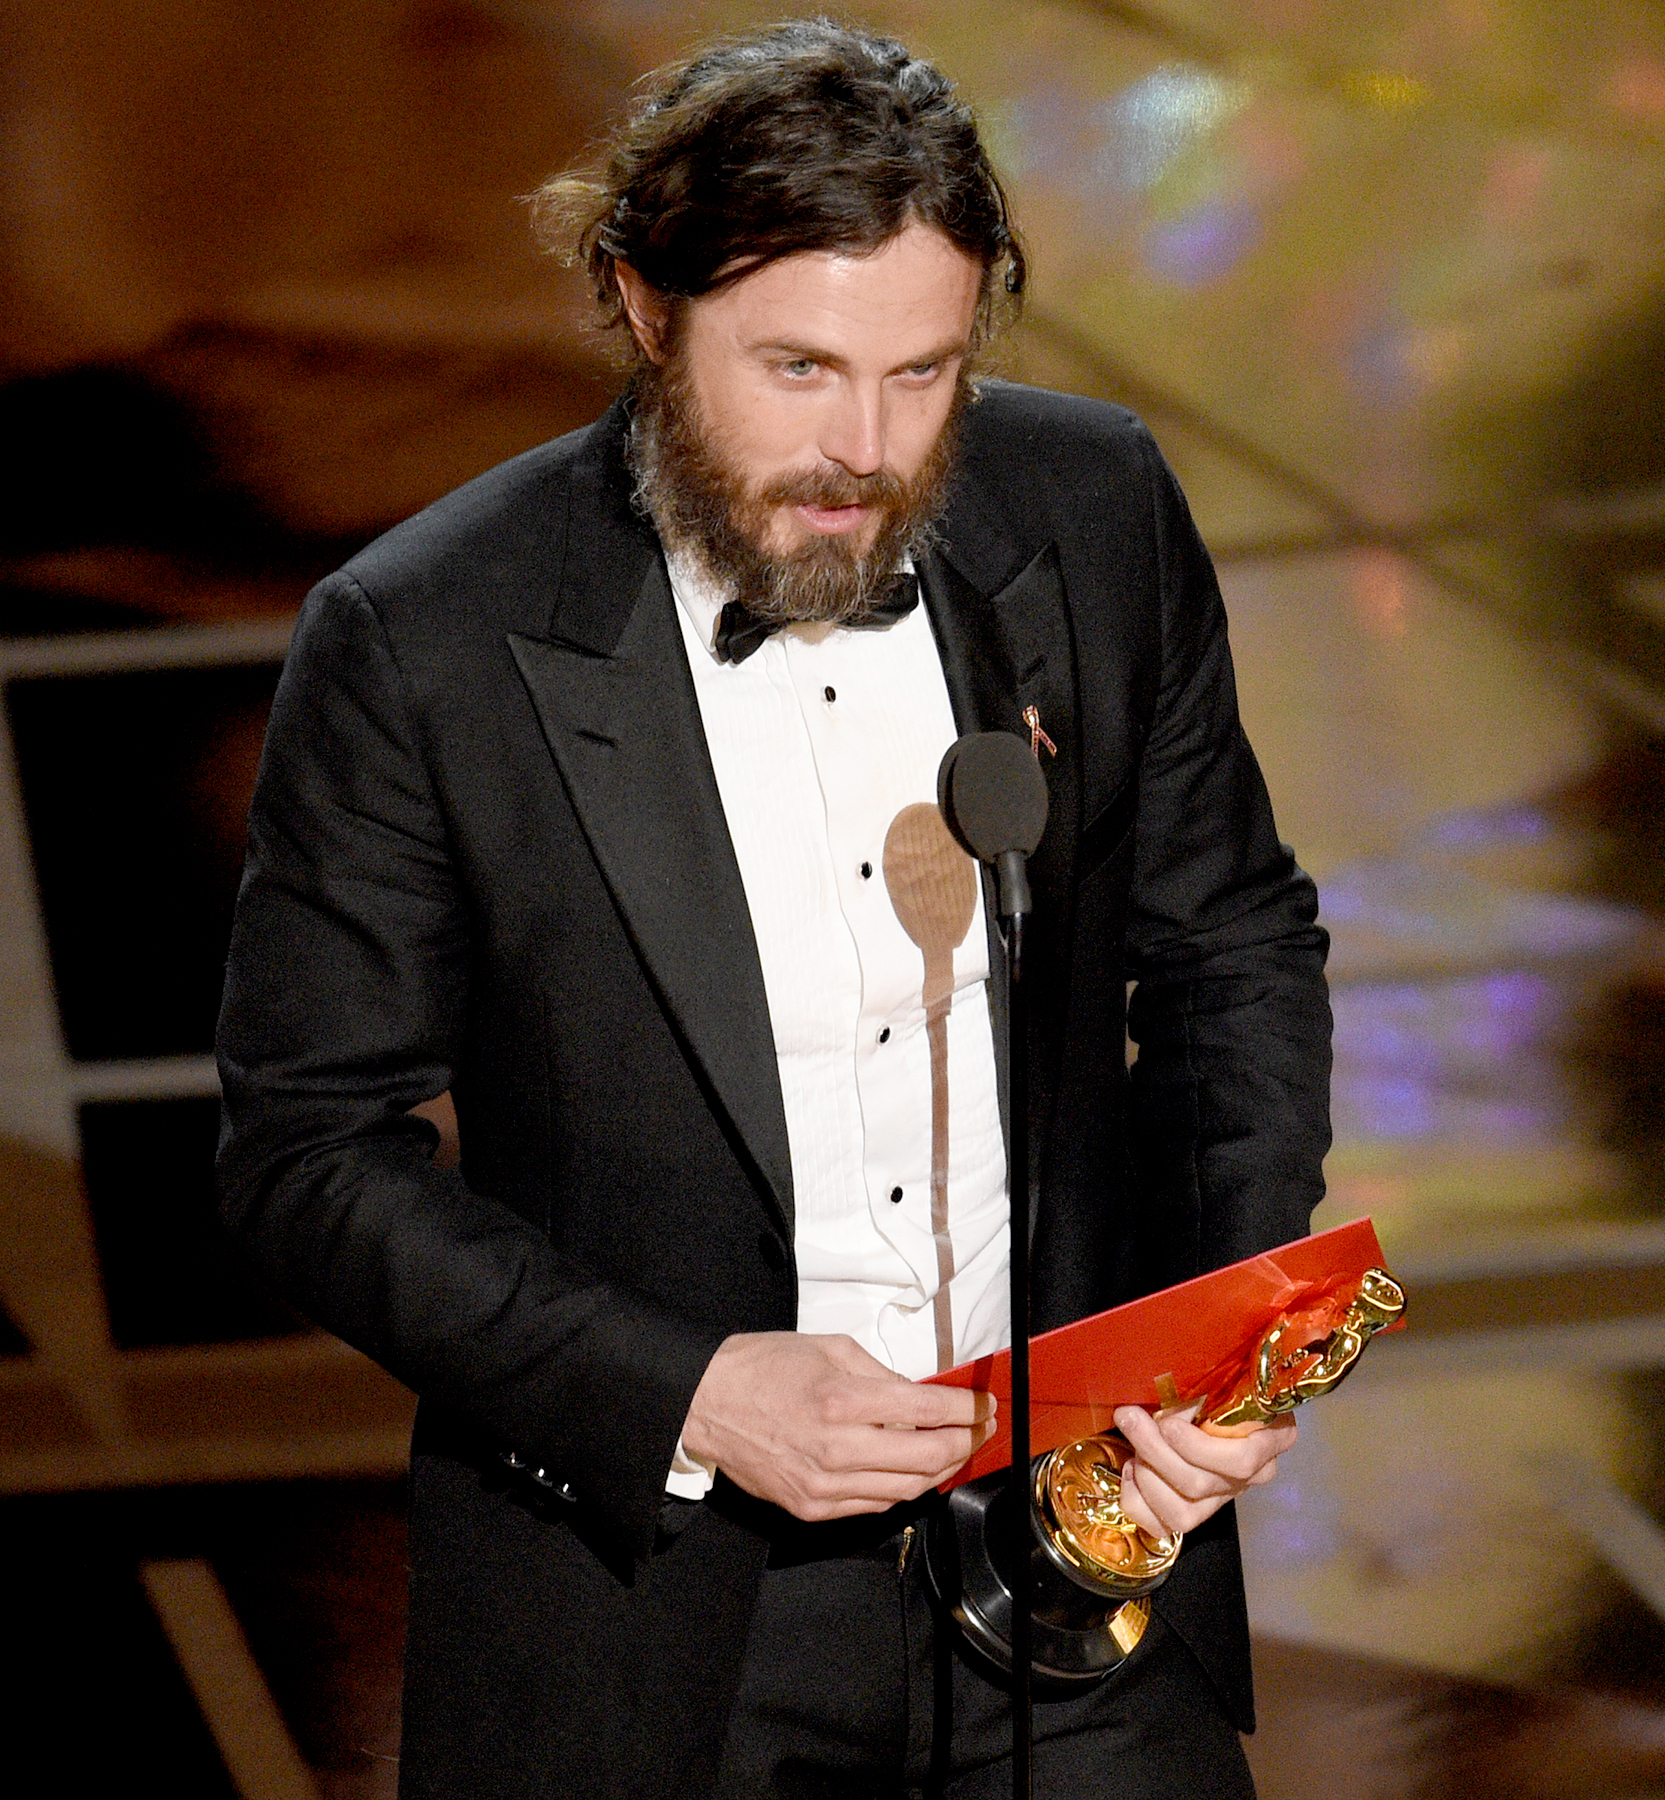 """Casey Affleck accepts the award for best actor in a leading role for """"Manchester by the Sea"""" at the Oscars on Sunday, Feb. 26, 2017, at the Dolby Theatre in Los Angeles."""